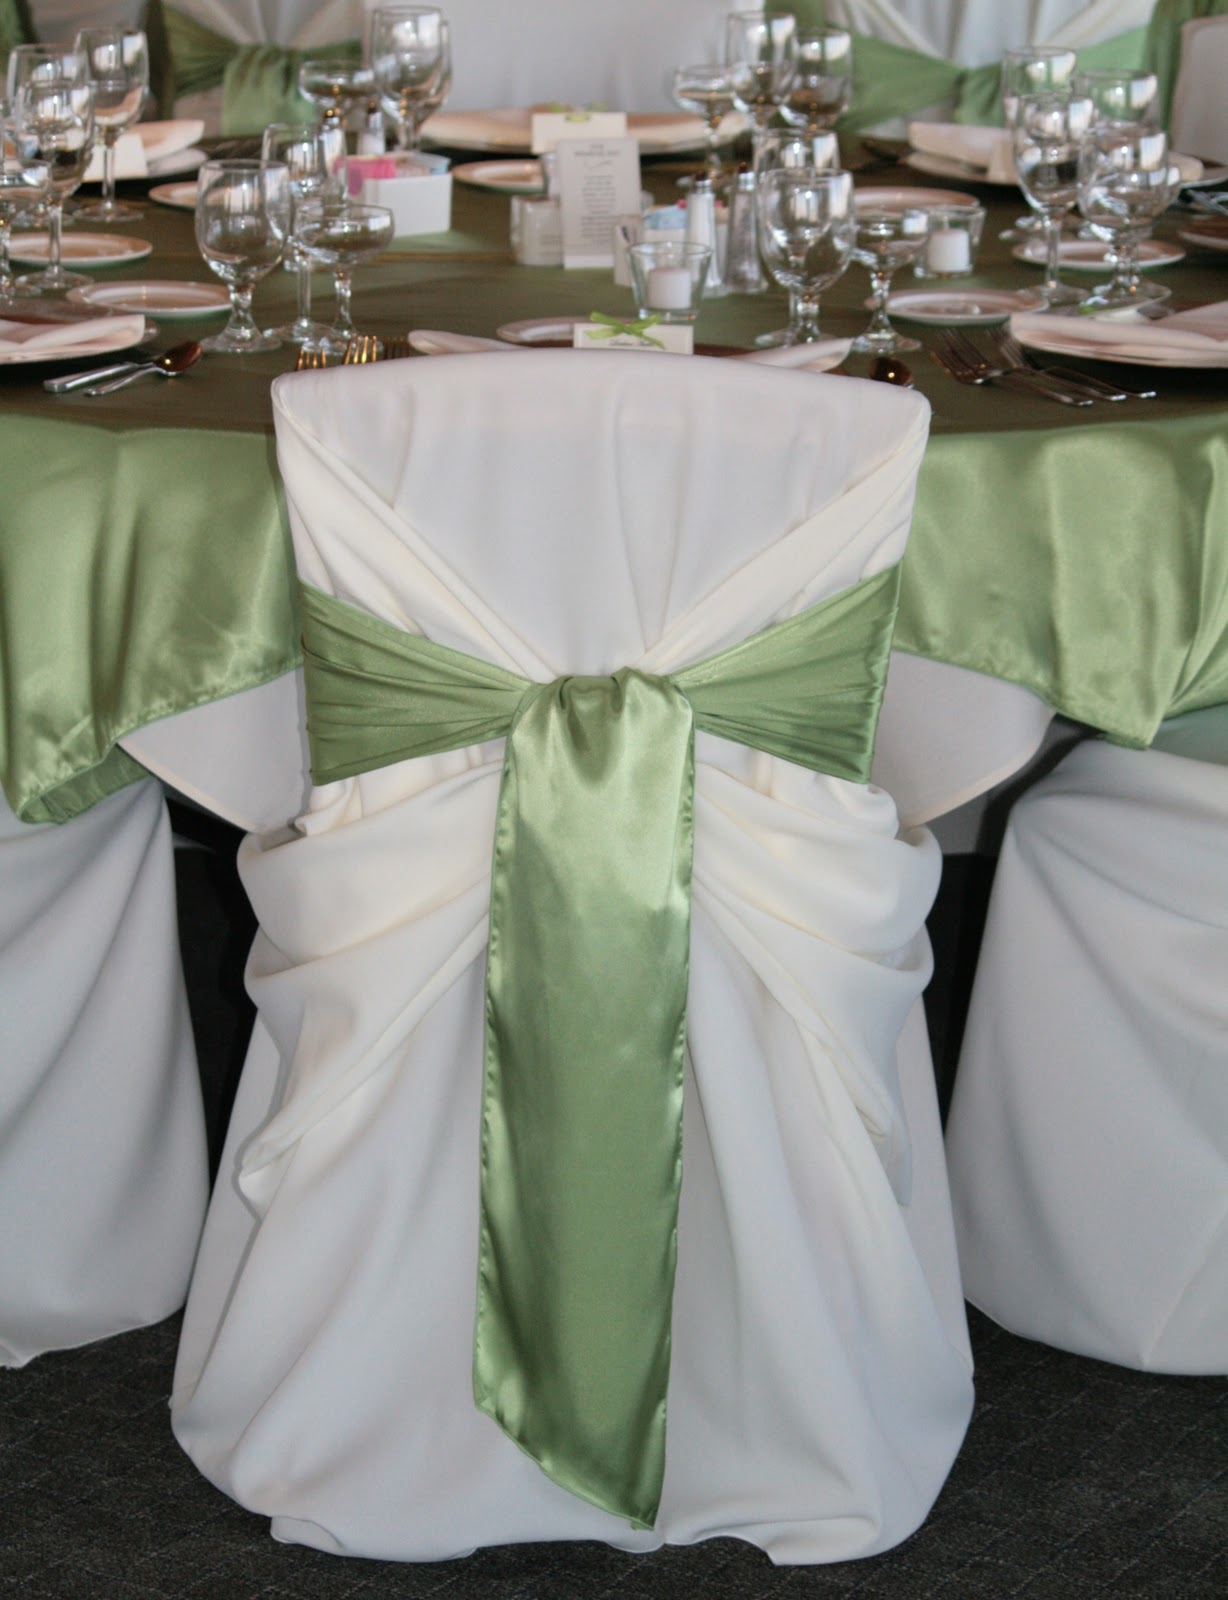 mint chair sashes stools with backs brown bunny flowers september 18 2010 julie and jason